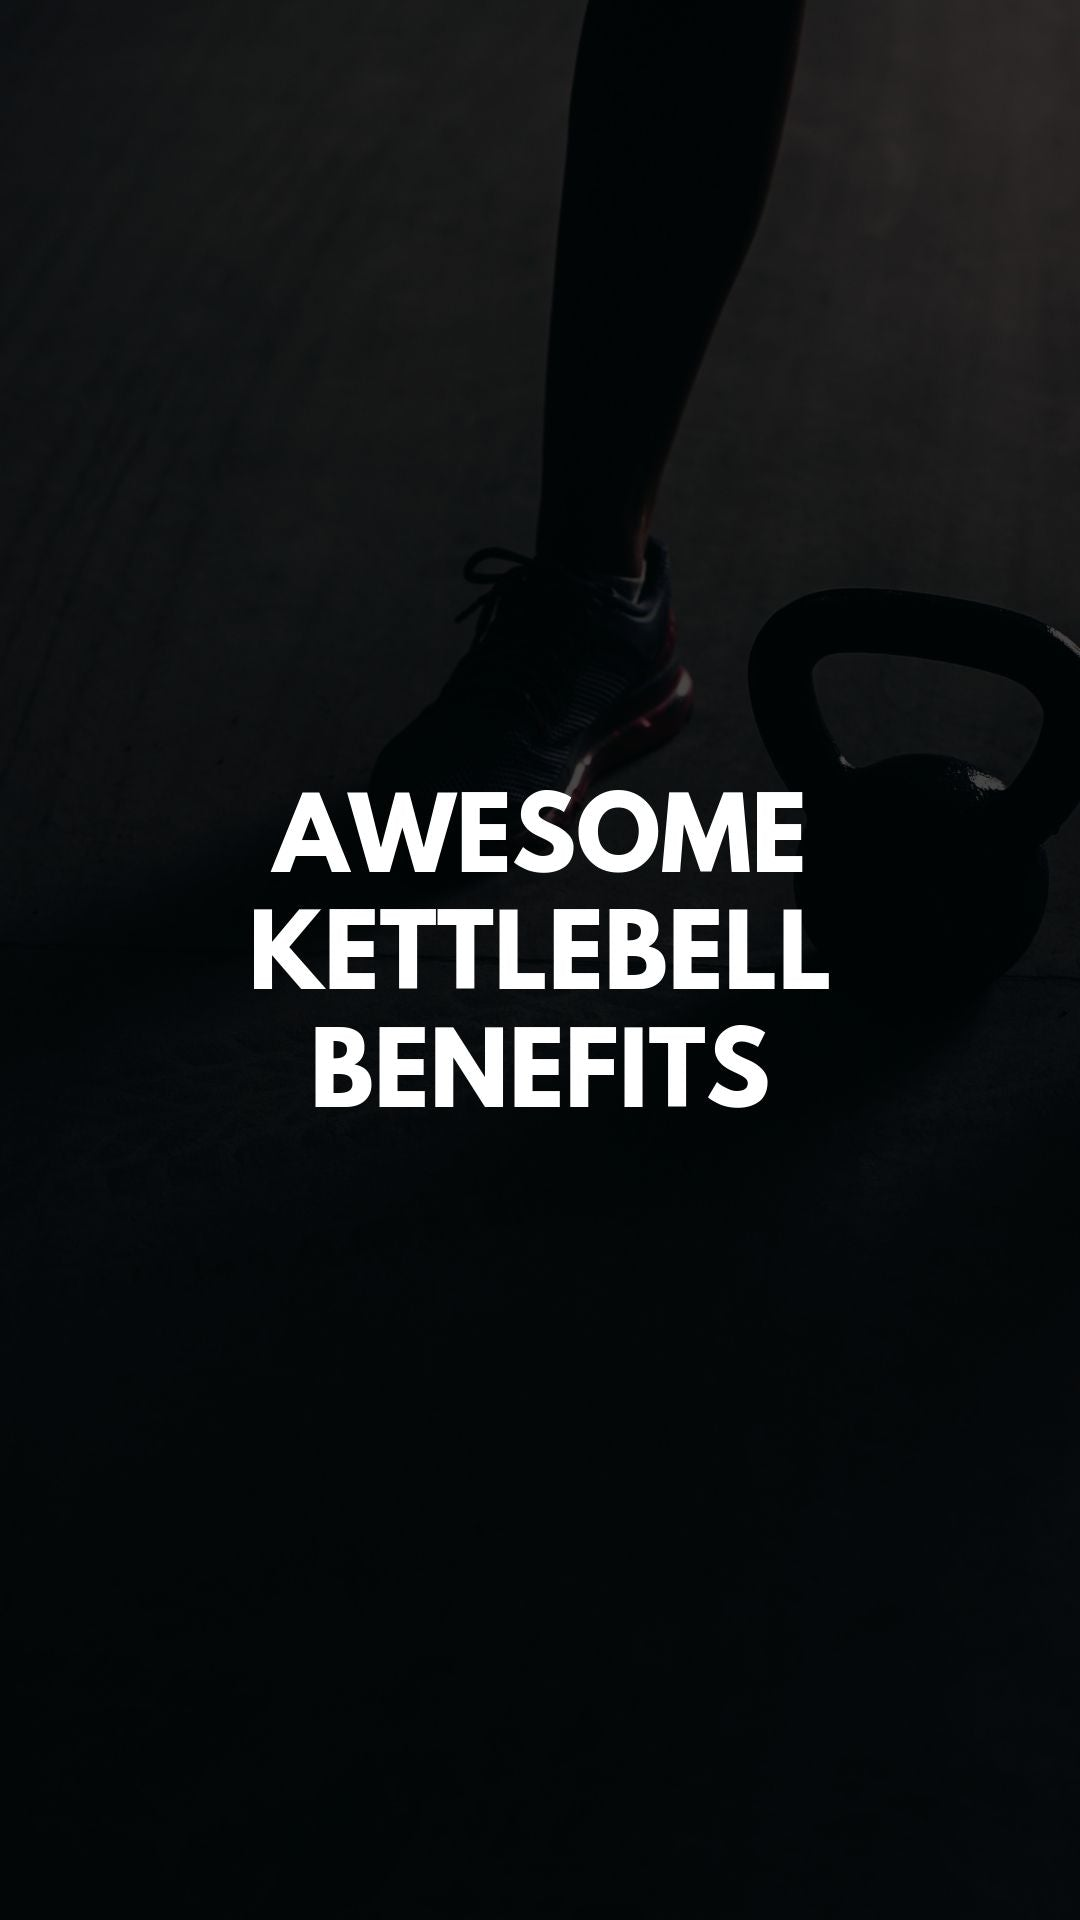 AWESOME Kettlebell Benefits